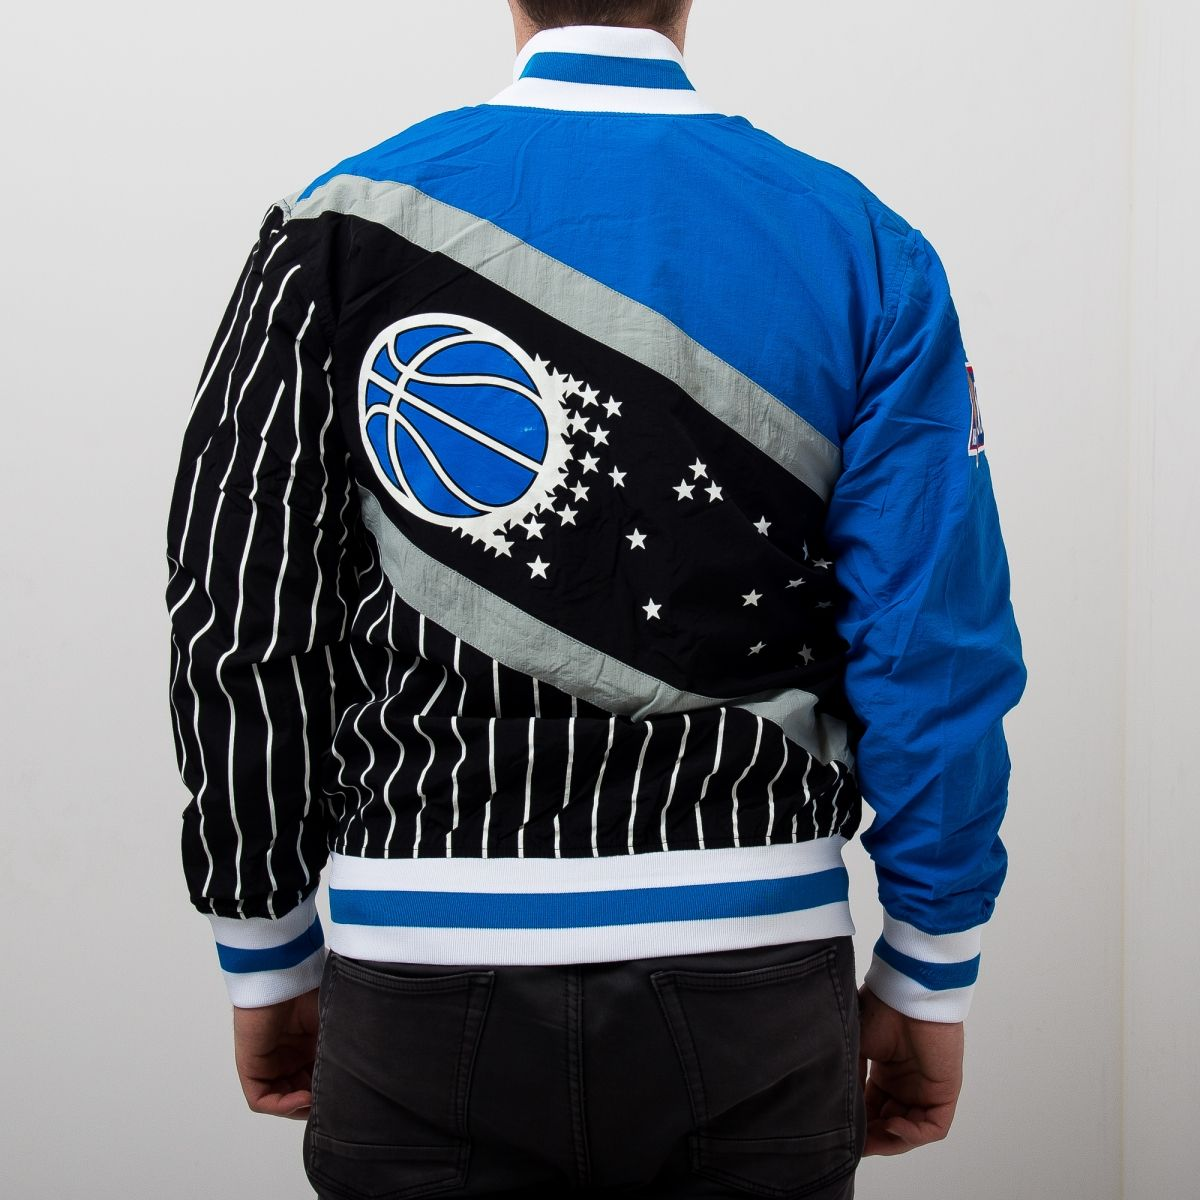 2caf96a427333 1200x1200 · Type Jackets Mitchell  amp  Ness NBA Orlando Magic Authentic  Warm Up Jacket